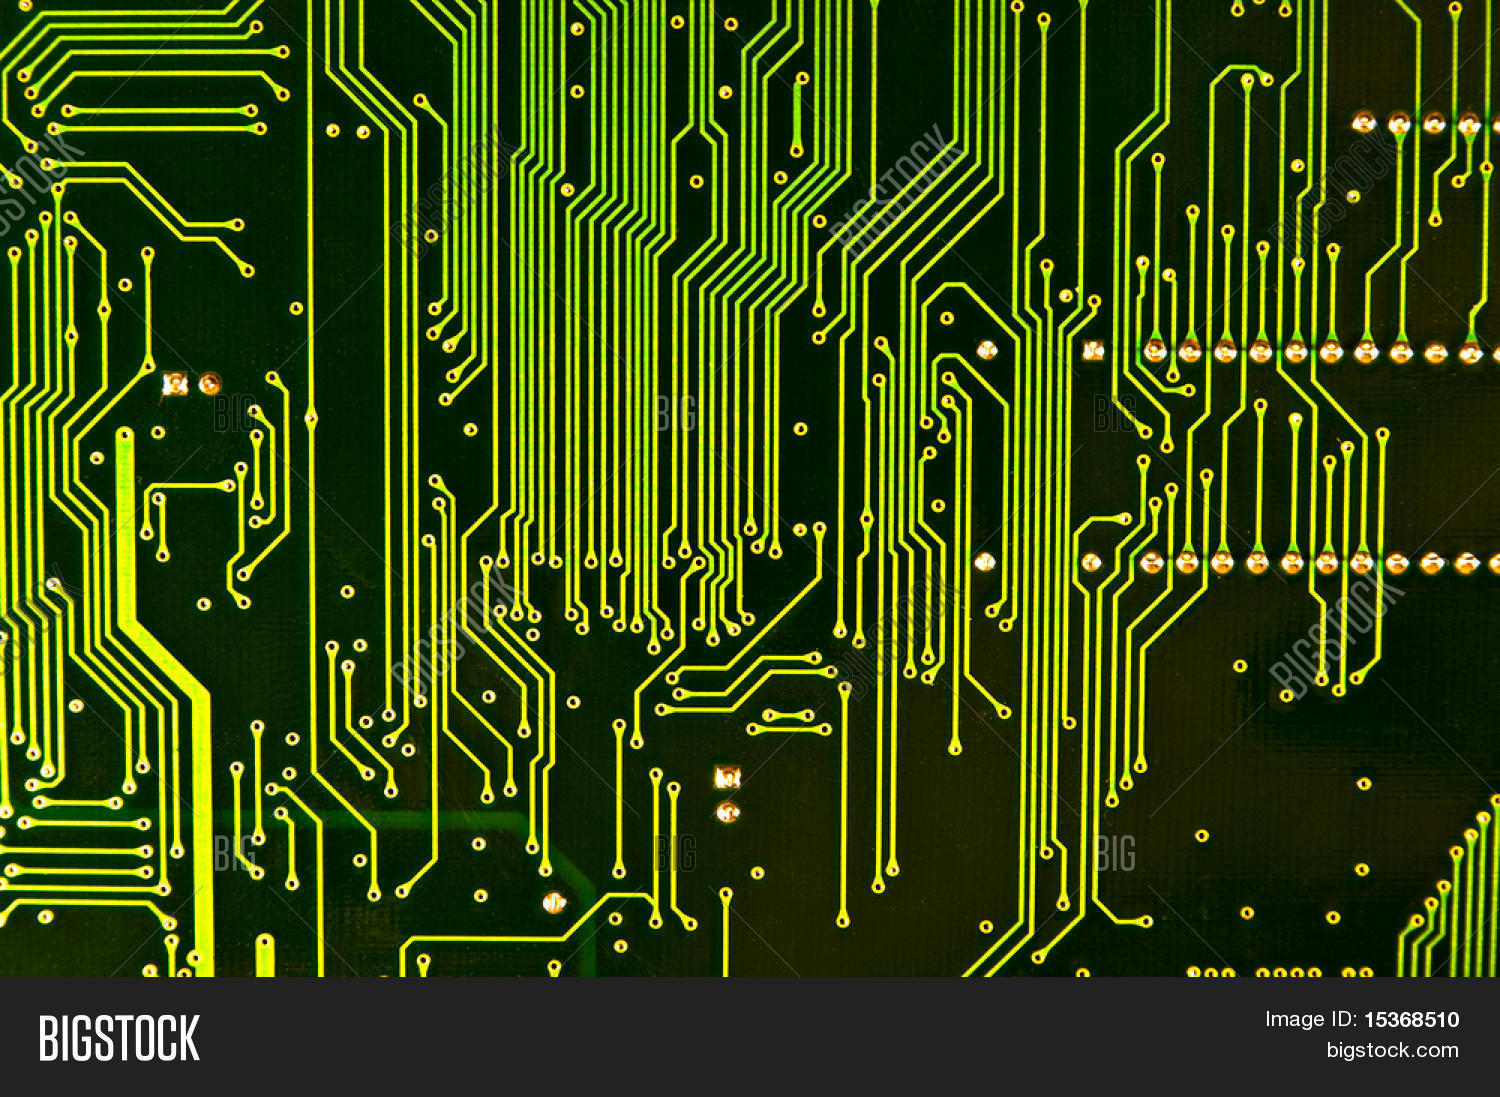 Computer Chip Closeup. Texture Image & Photo | Bigstock